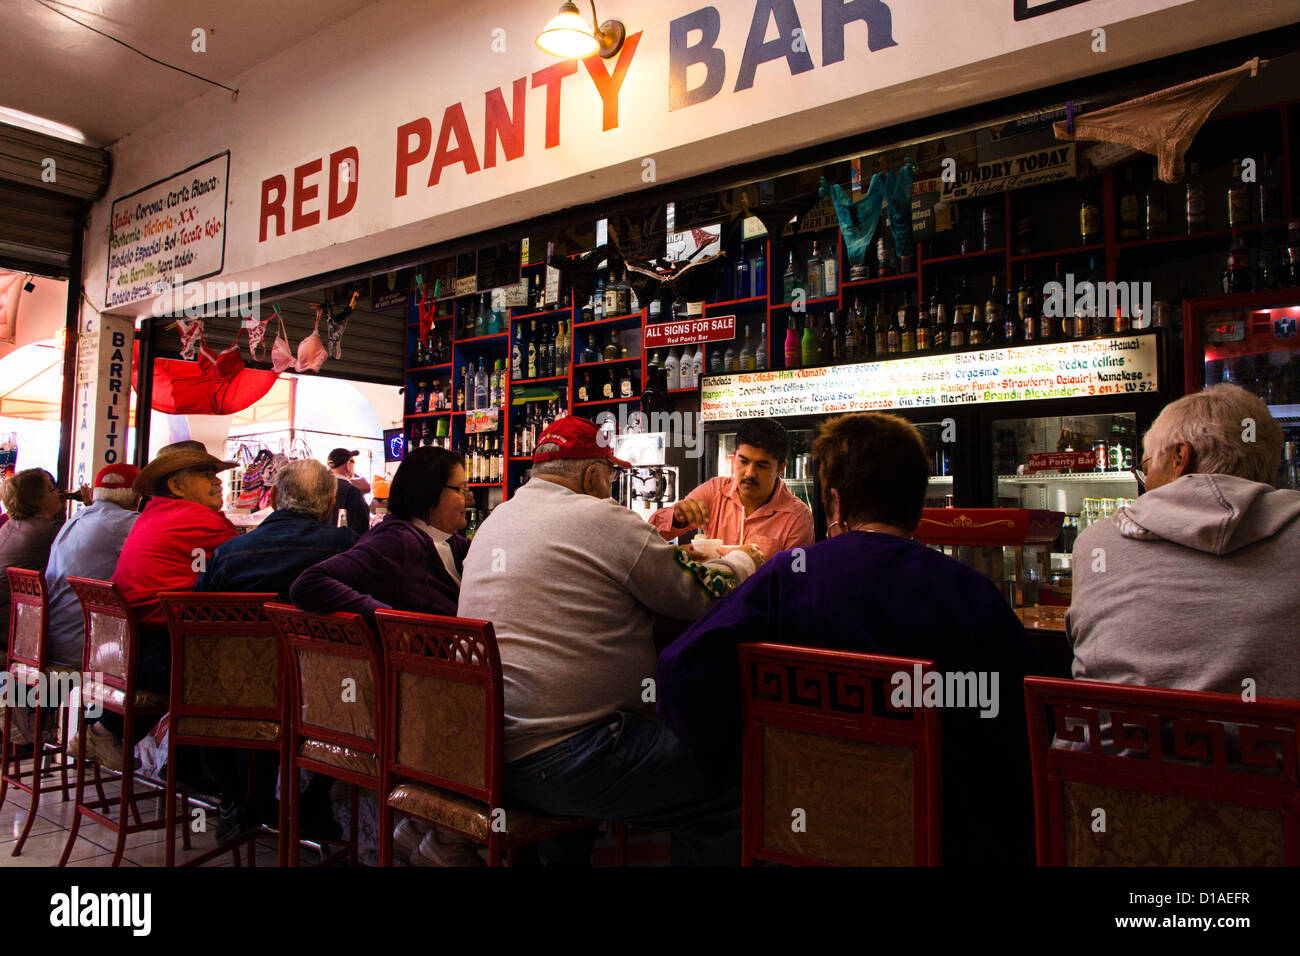 Senior citizens sitting on bar stools at the Red Panty Bar in Nuevo Progreso, Tamaulipas, Mexico.  It's 10:30 A.M. Stock Photo